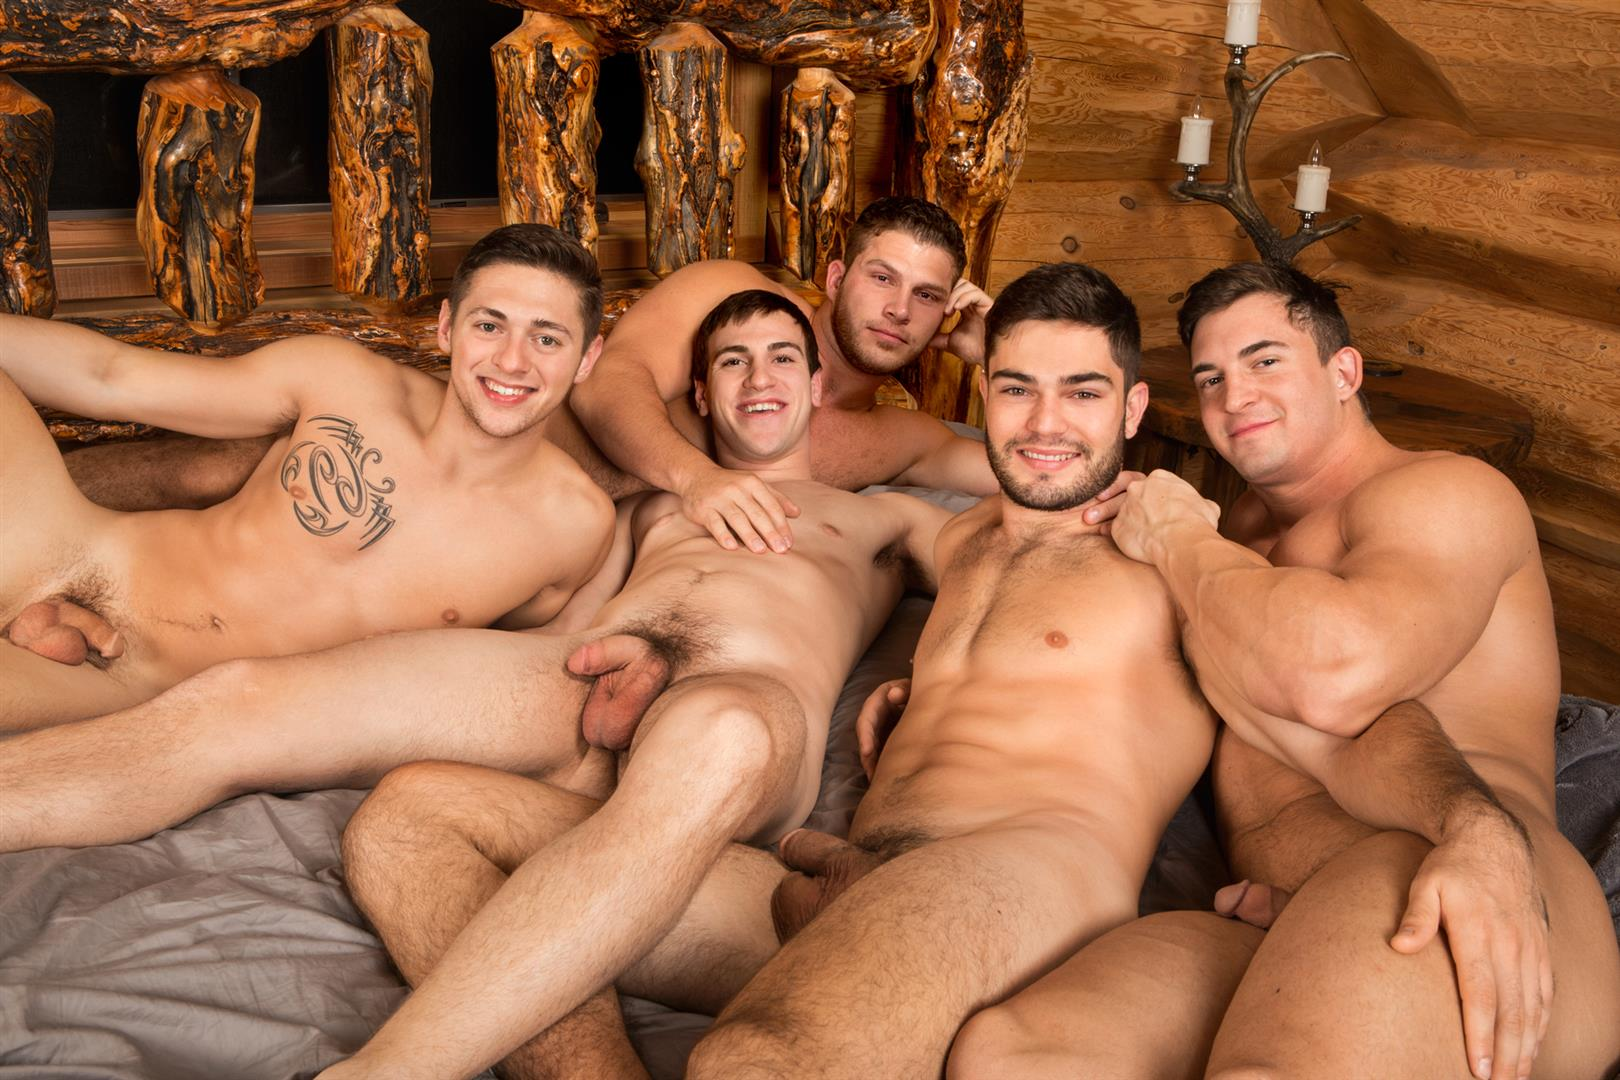 Sean-Cody-Winter-Getaway-Day-1-Big-Dick-Hunks-Fucking-Bareback-Amateur-Gay-Porn-08 Sean Cody Takes The Boys On A 8-Day Bareback Winter Getaway